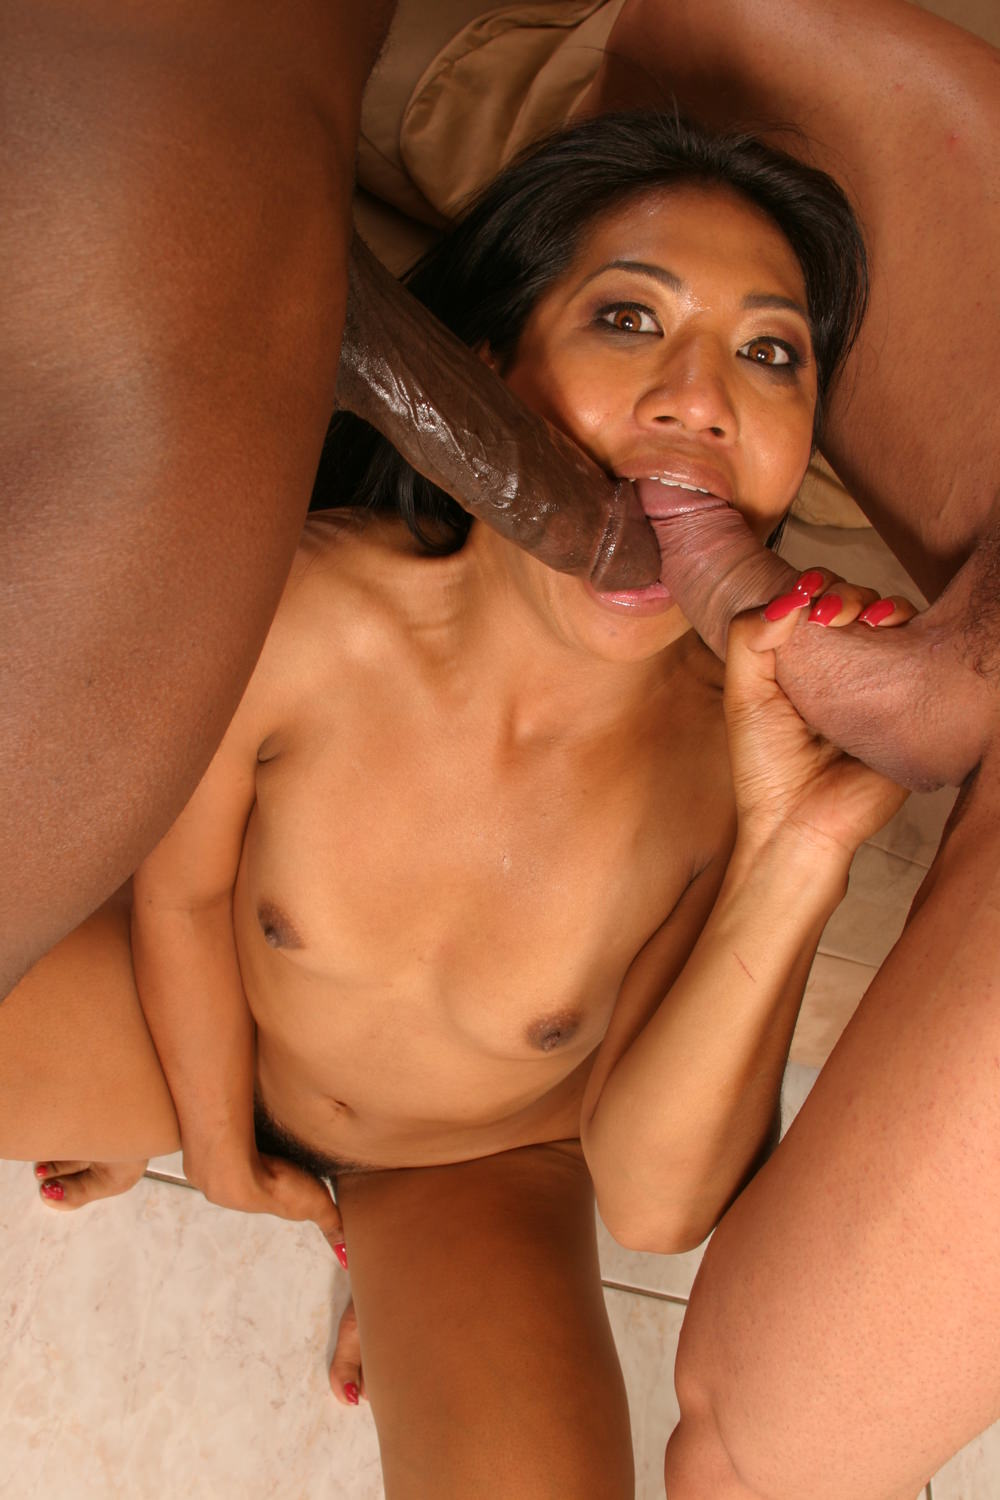 Anal,Asian,Hardcore,Interracial,Threesome,Best Gonzo,HD Videos,Tiny Cocks,Stretched,Tiny